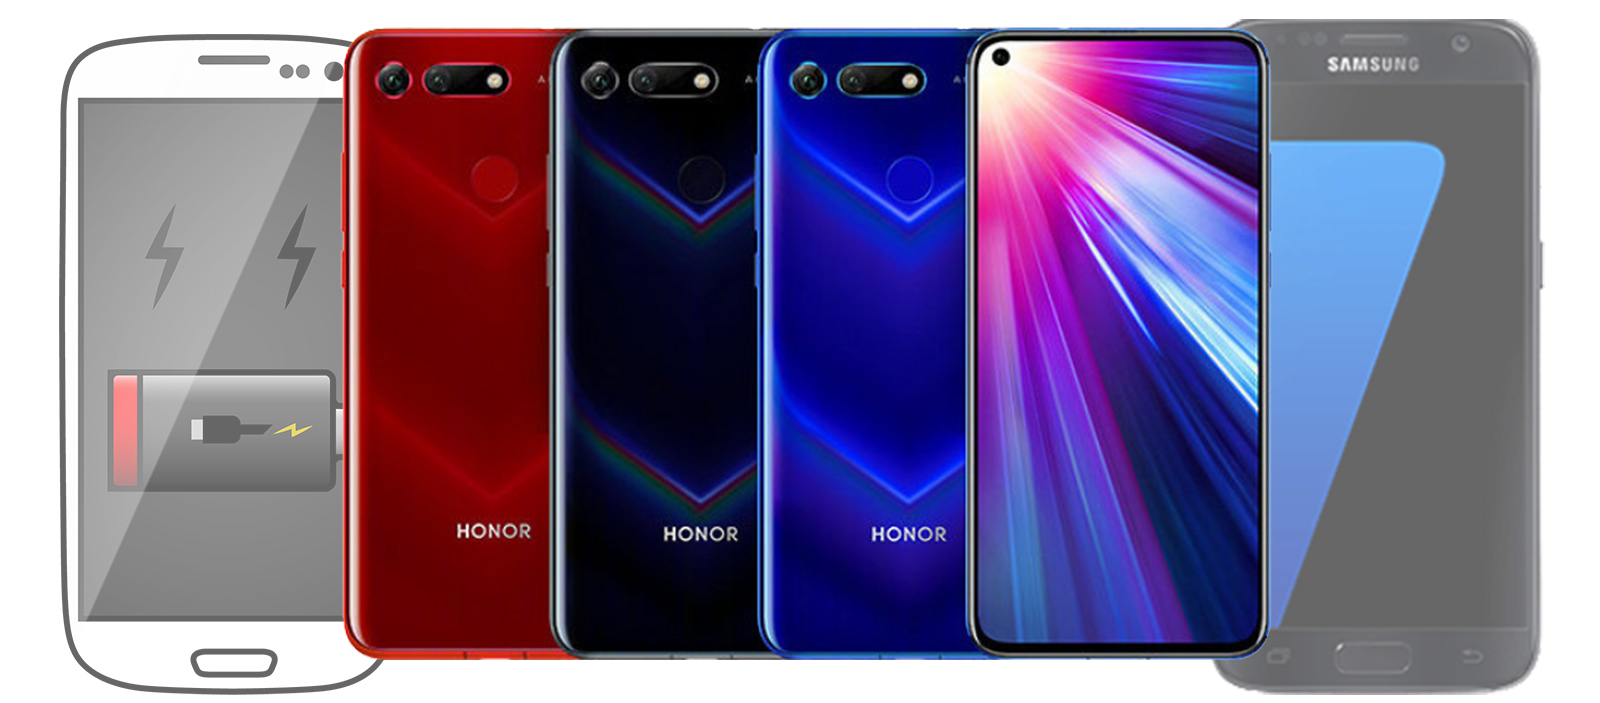 Upcoming Mobile Phones In India 2019